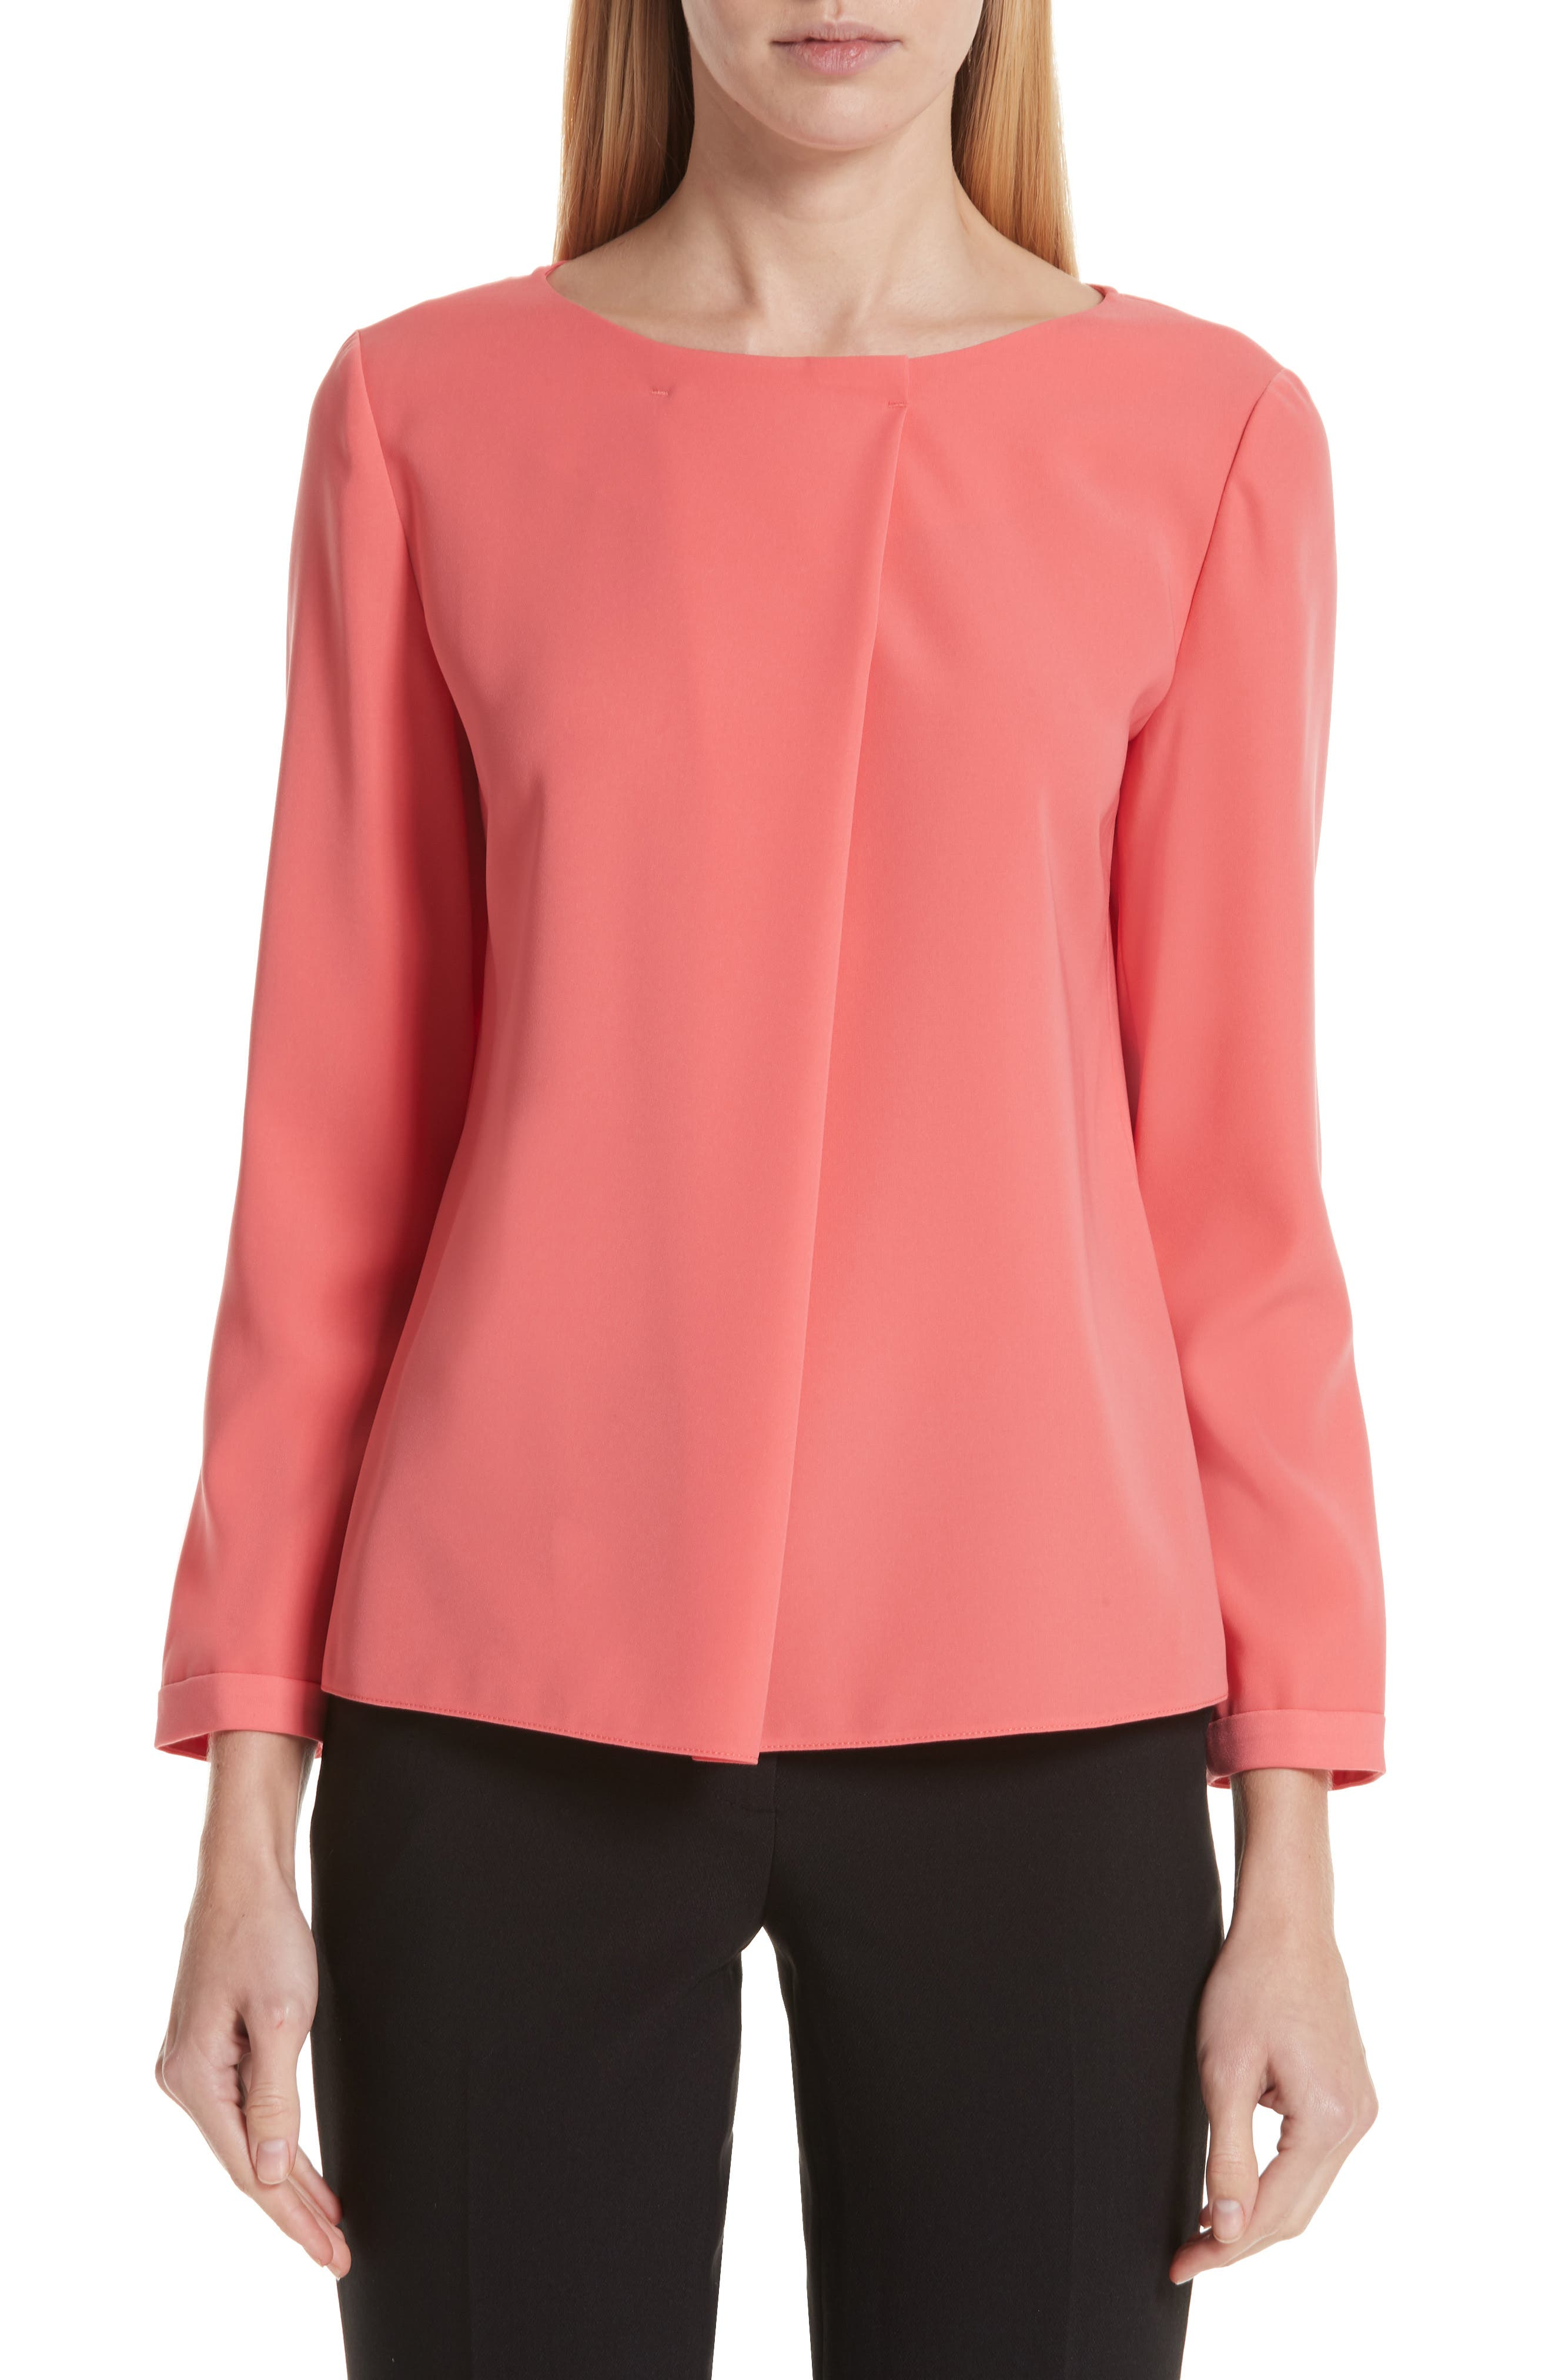 EMPORIO ARMANI,                             Asymmetrical Blouse,                             Main thumbnail 1, color,                             SUNRISE RED